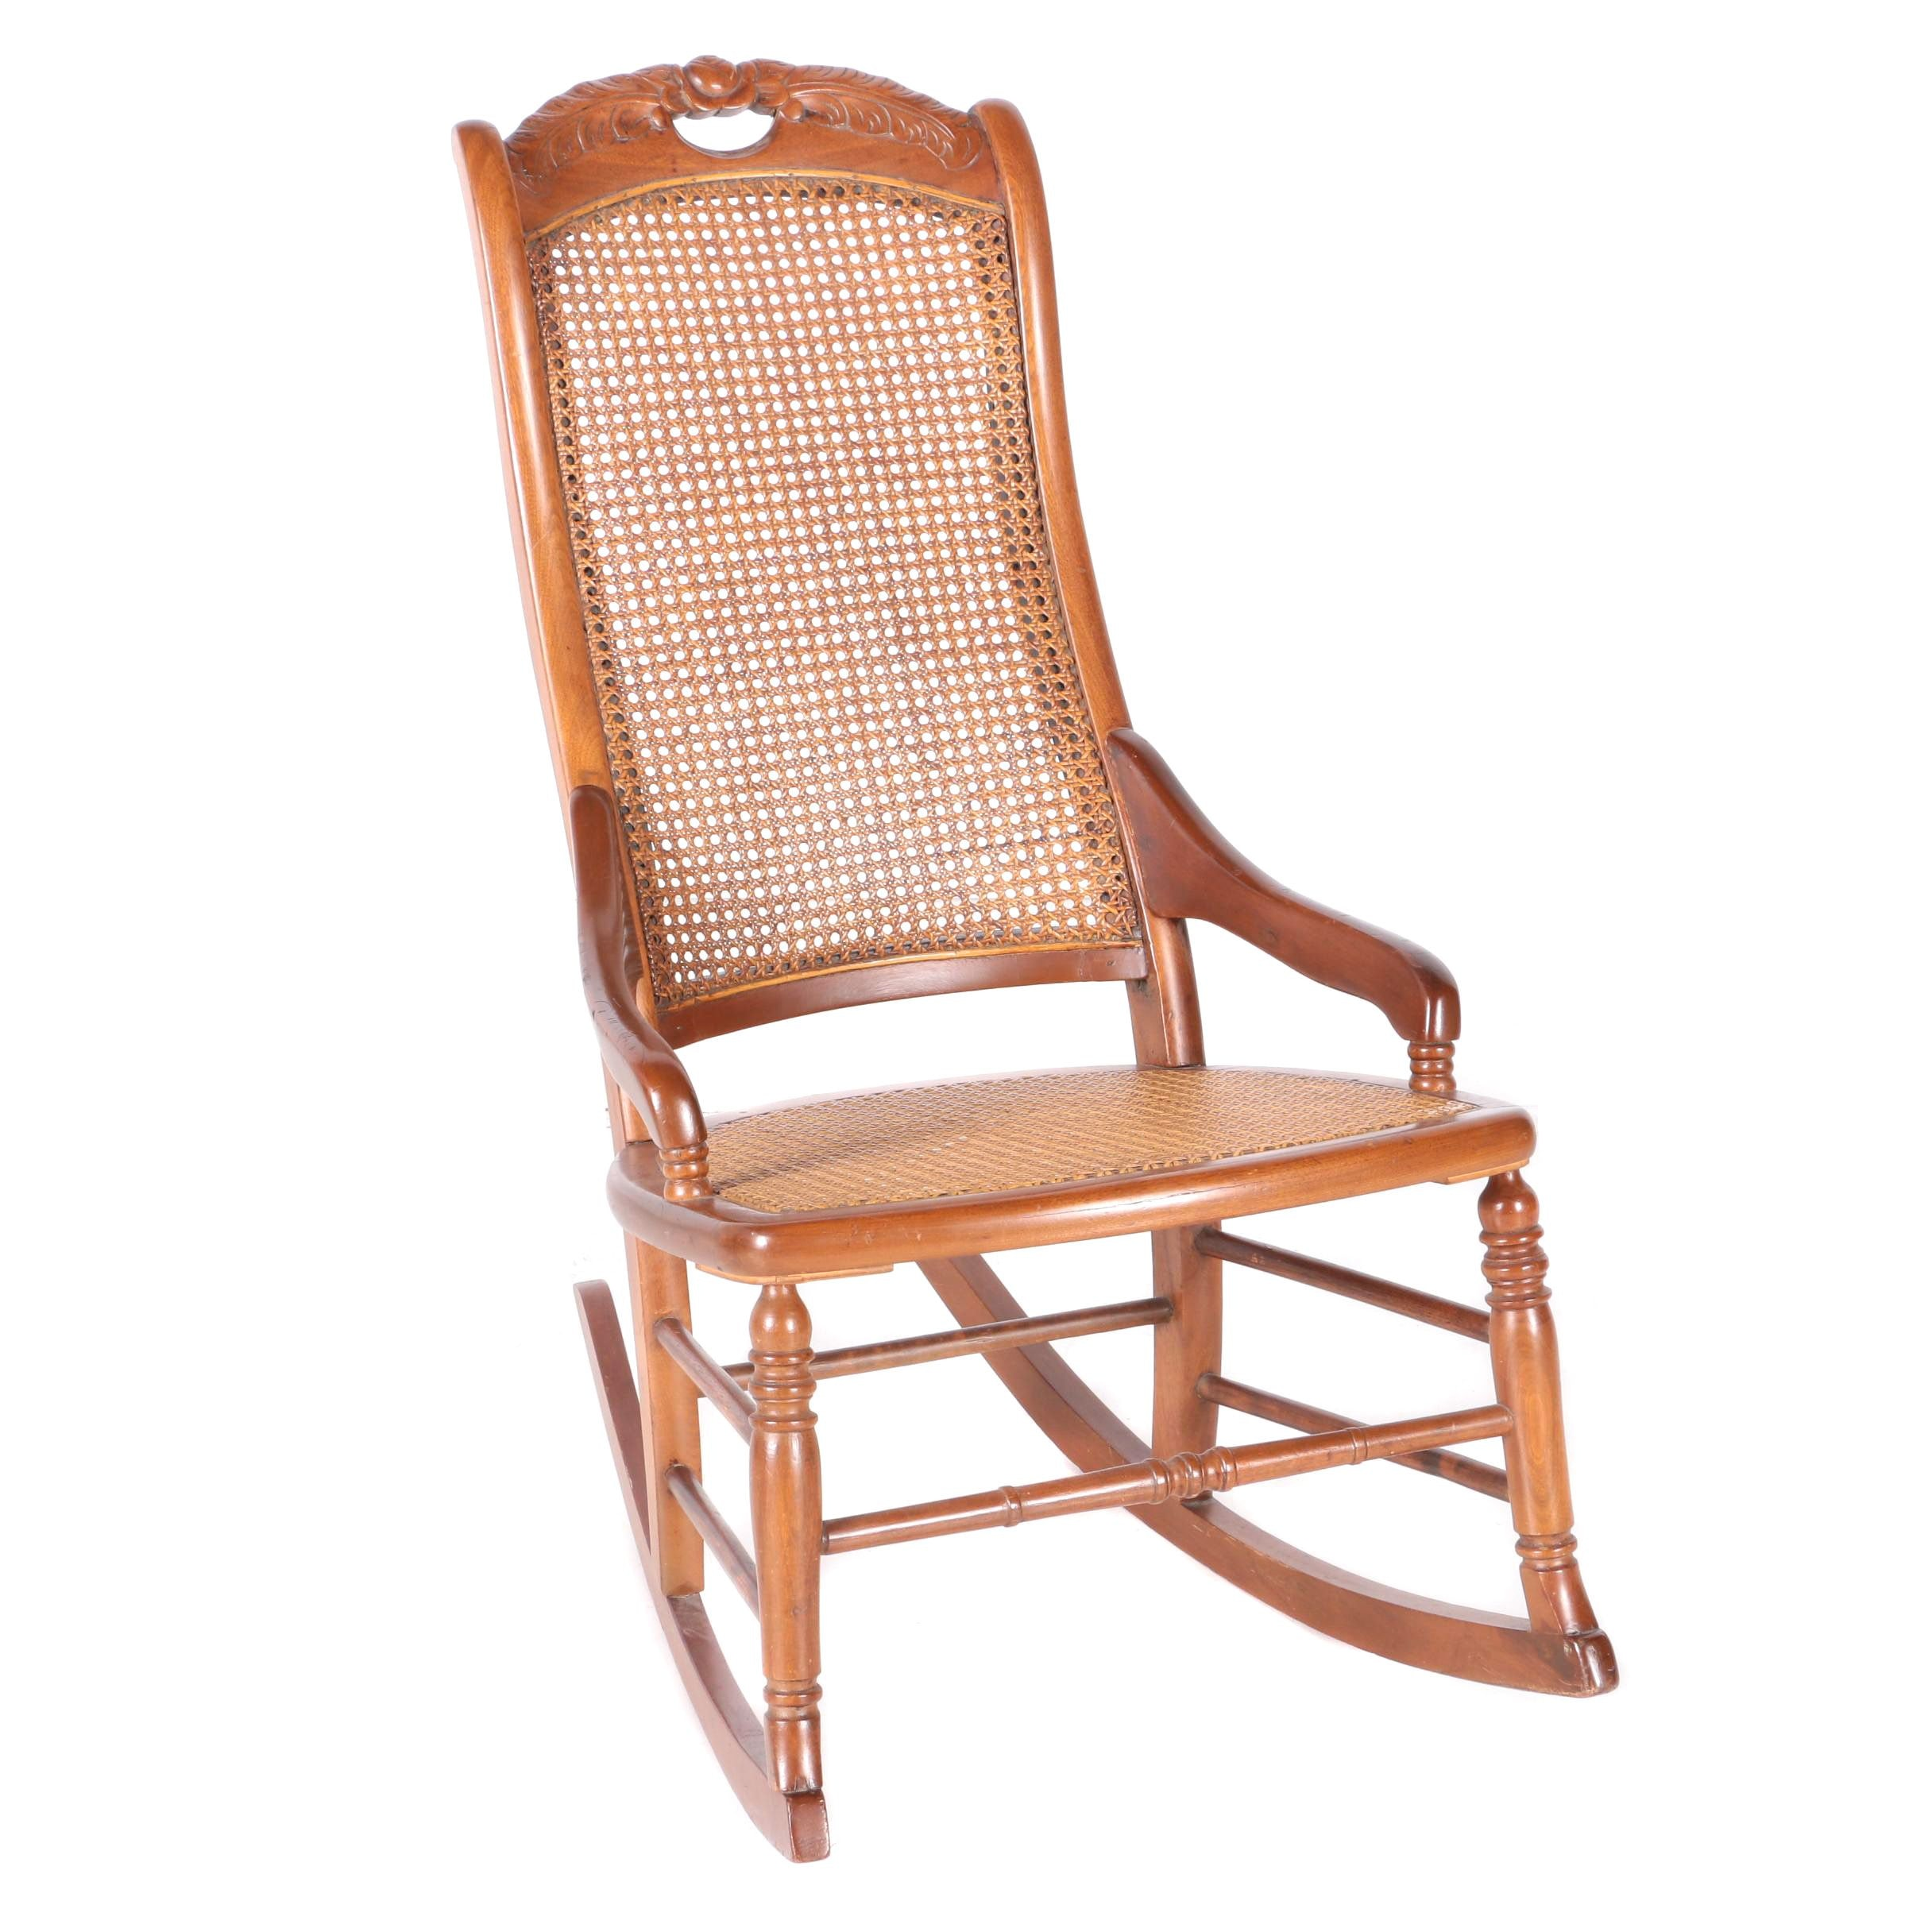 Merveilleux Vintage Oak And Cane Rocking Chair ...